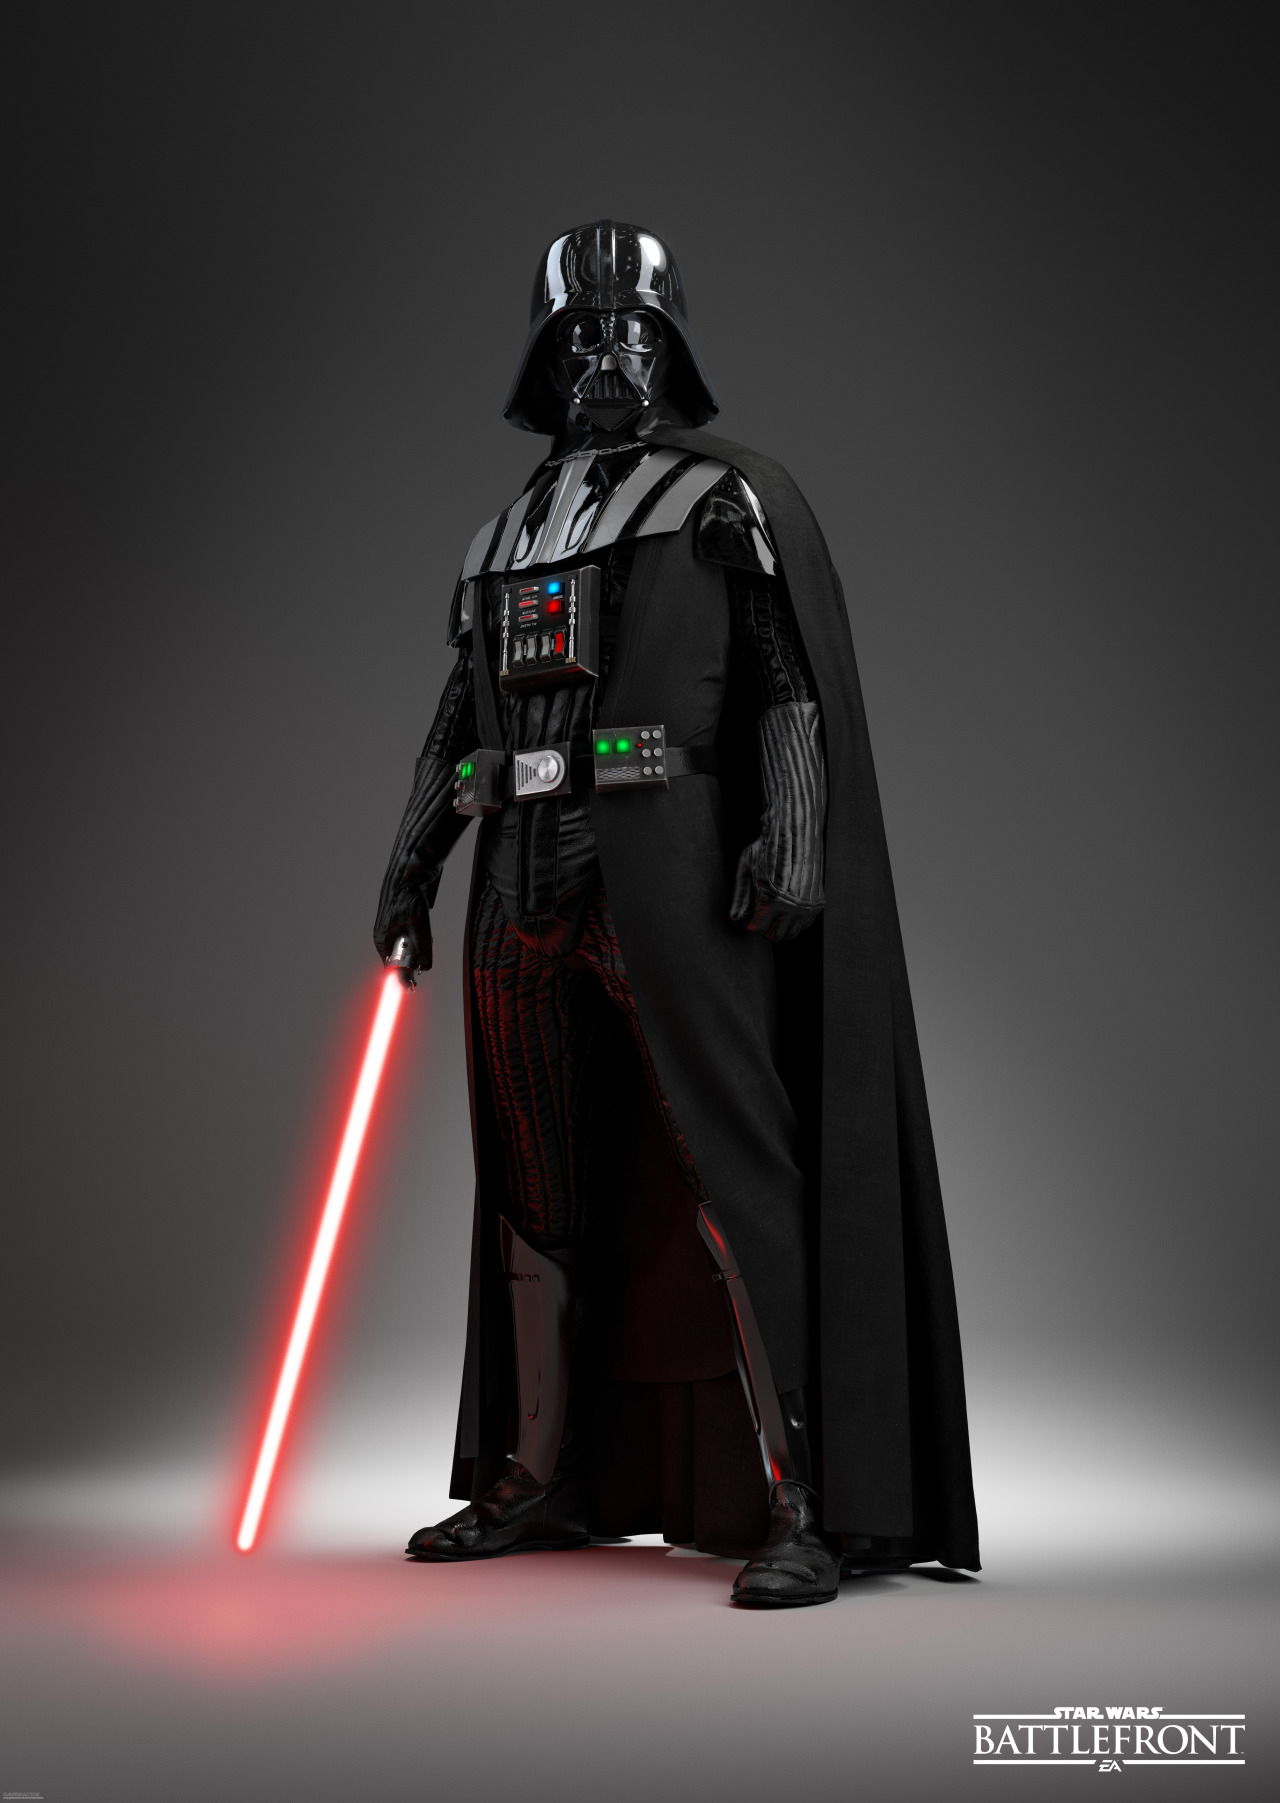 65215a8cf54b88 Darth Vader | Star Wars Battlefront Wiki | FANDOM powered by Wikia